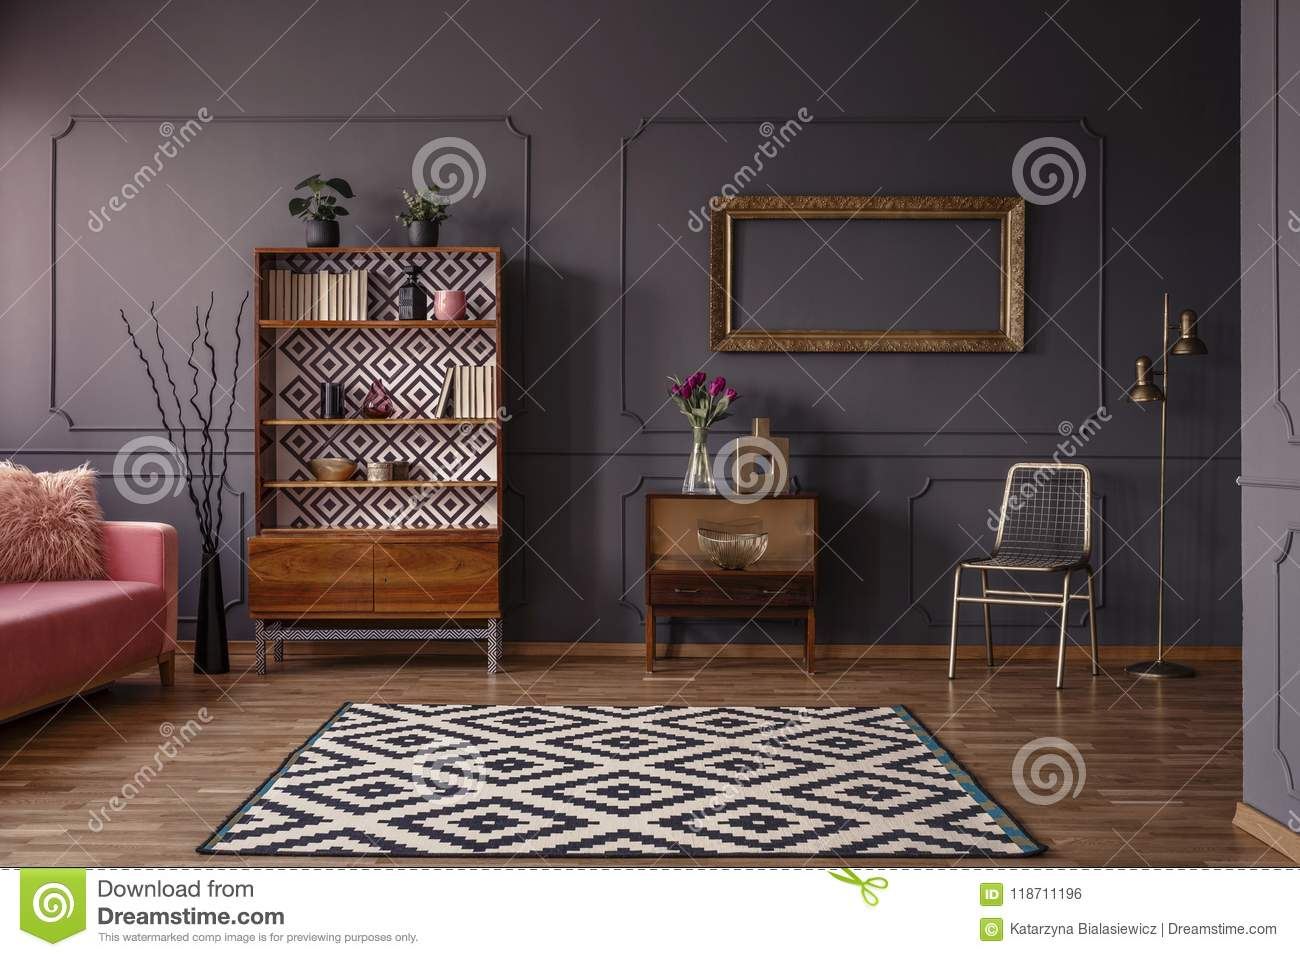 Vintage Living Room Interior With A Patterned Rug, Cupboard ...